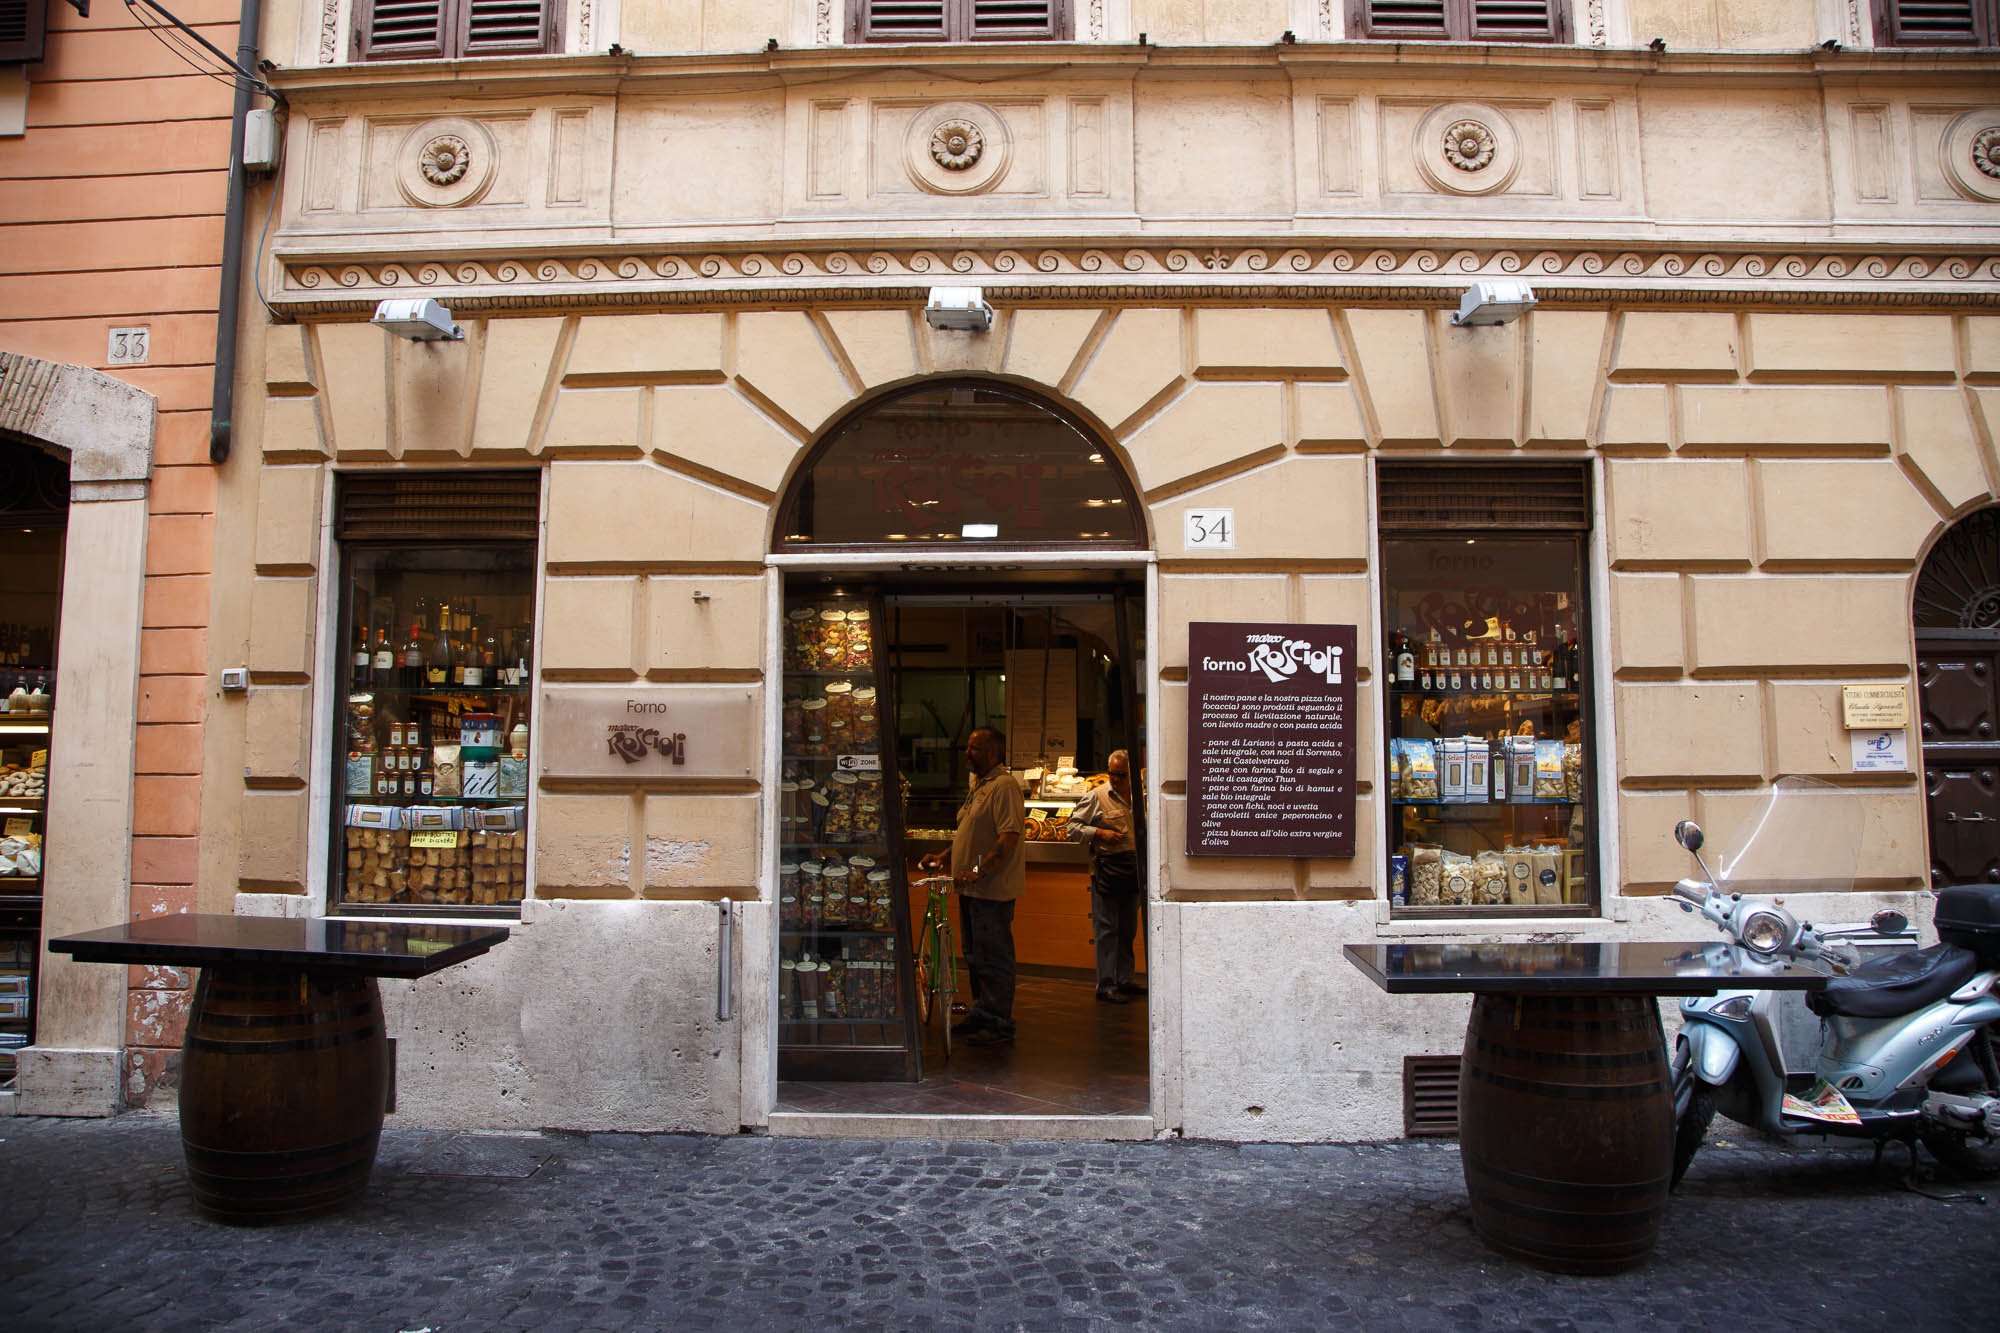 One of our very favorite restaurants in Rome - Ristorante Roscioli.